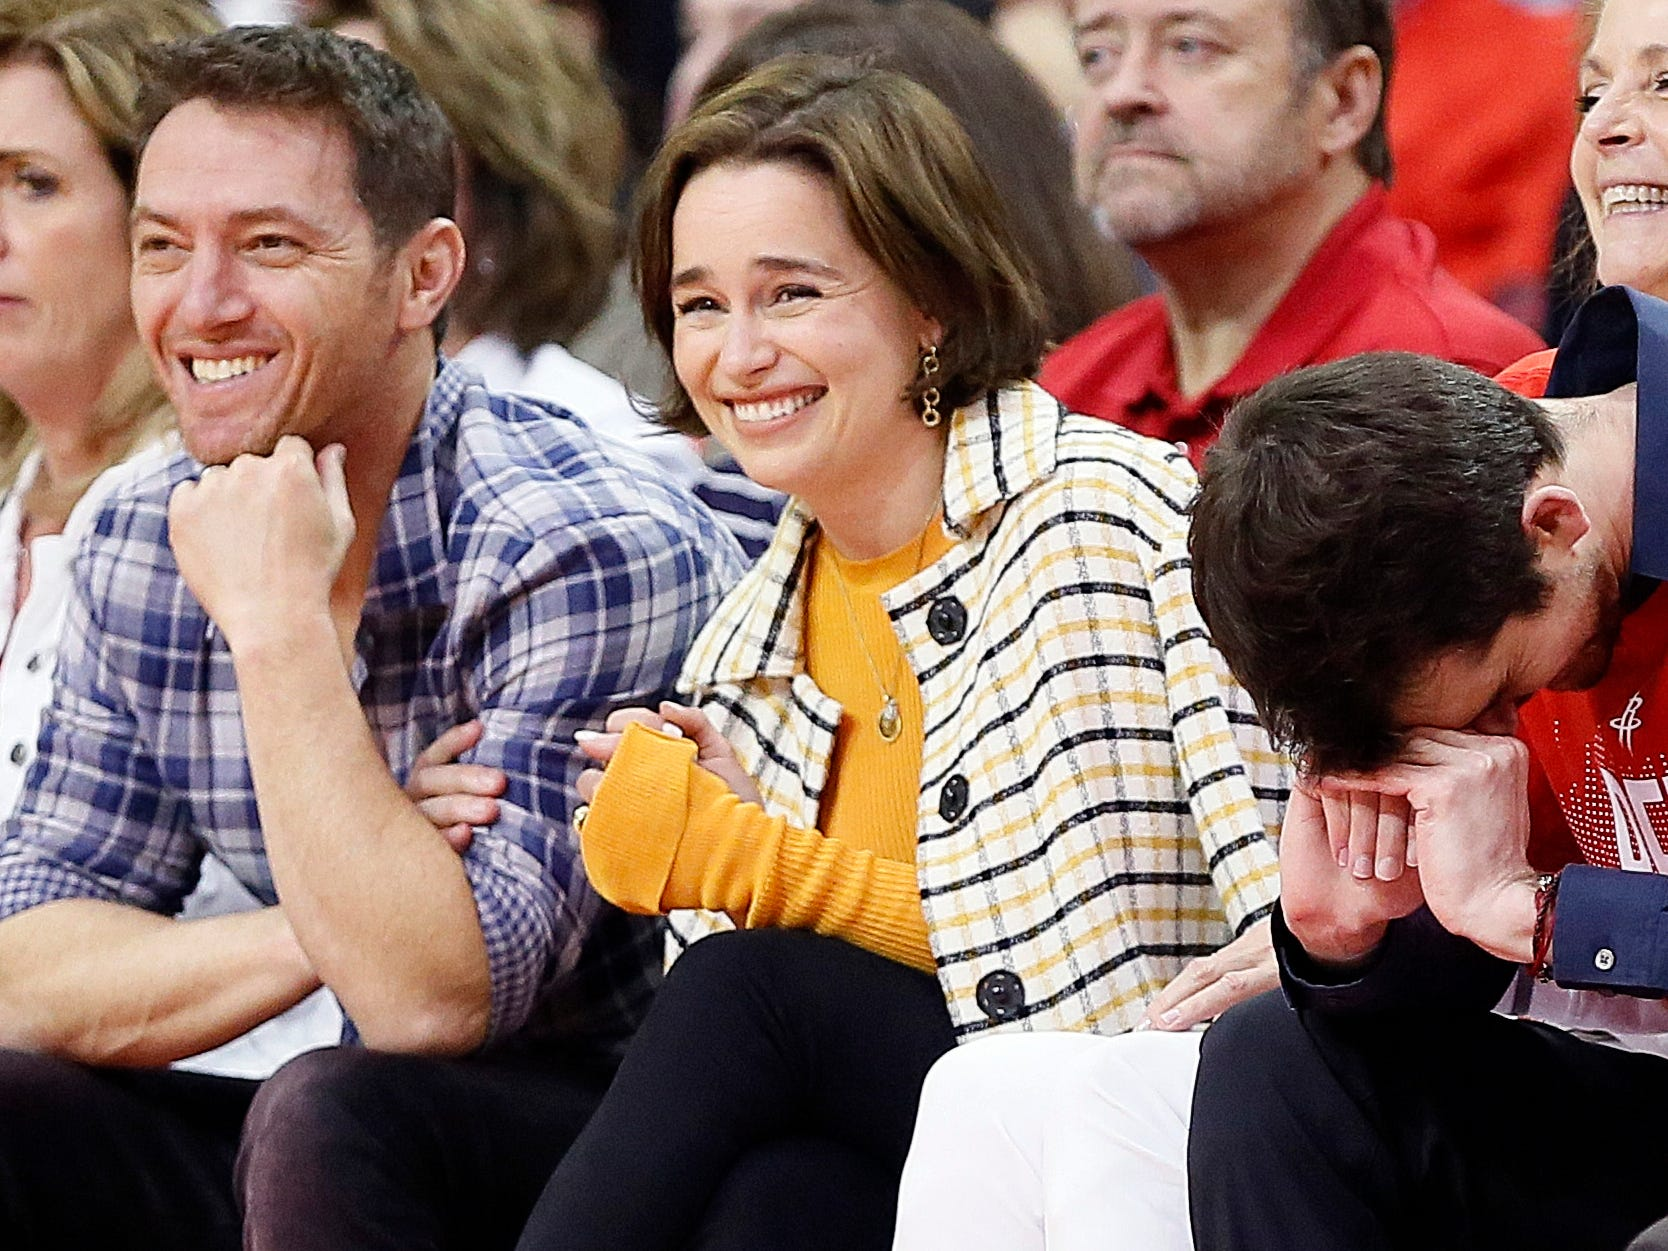 May 10: Game of Thrones actress Emilia Clarke takes in Game 6 between the Warriors and Rockets in Houston.